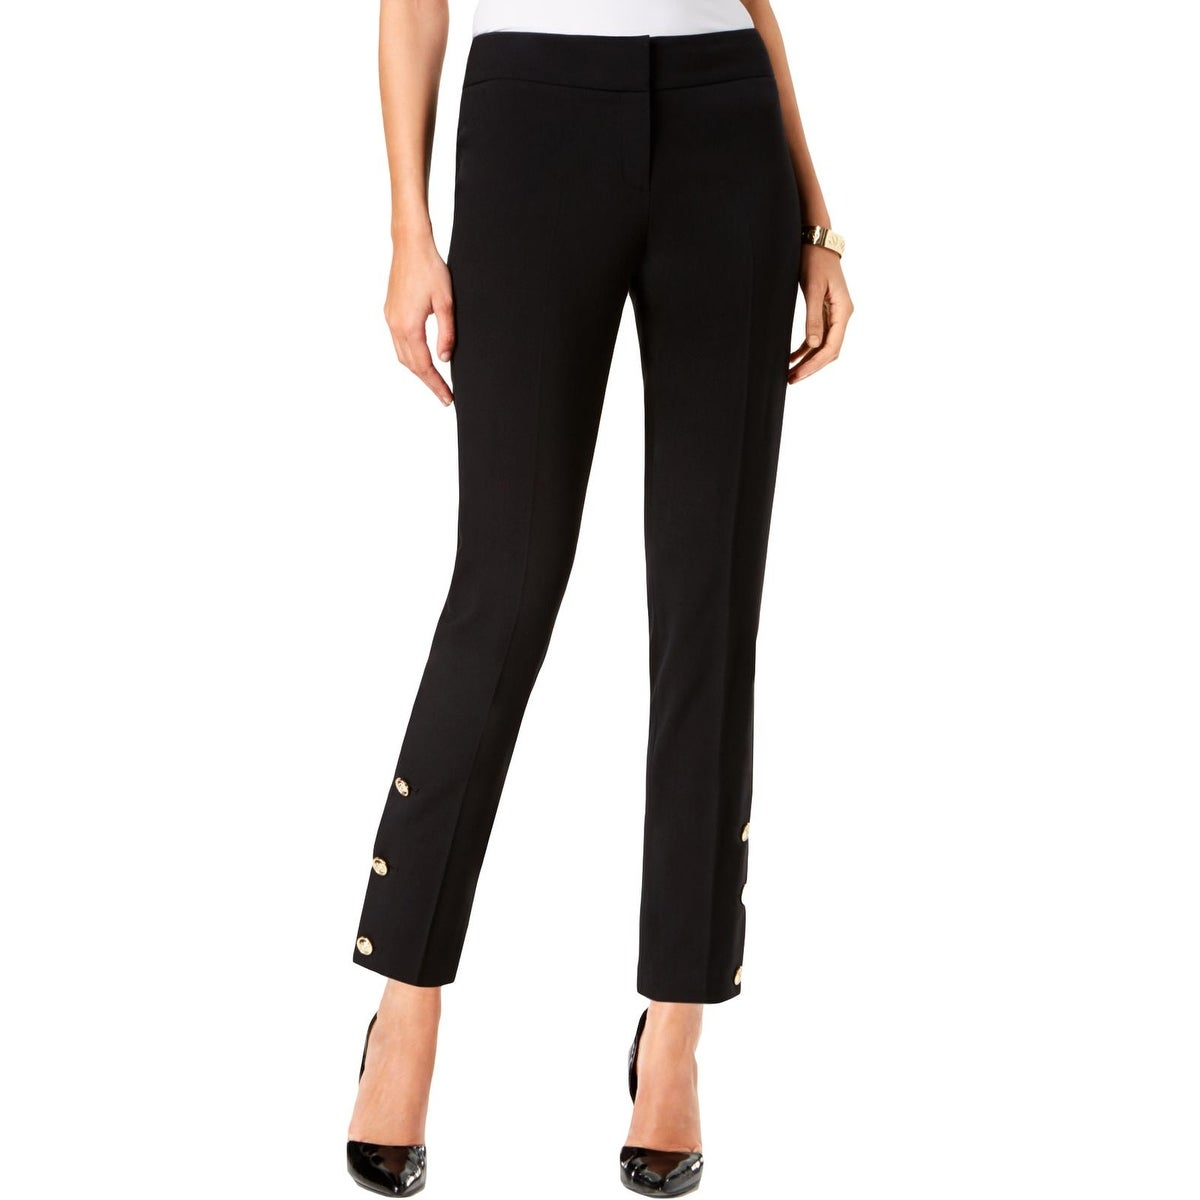 a6b692c22e5 Nine West Pants | Find Great Women's Clothing Deals Shopping at Overstock